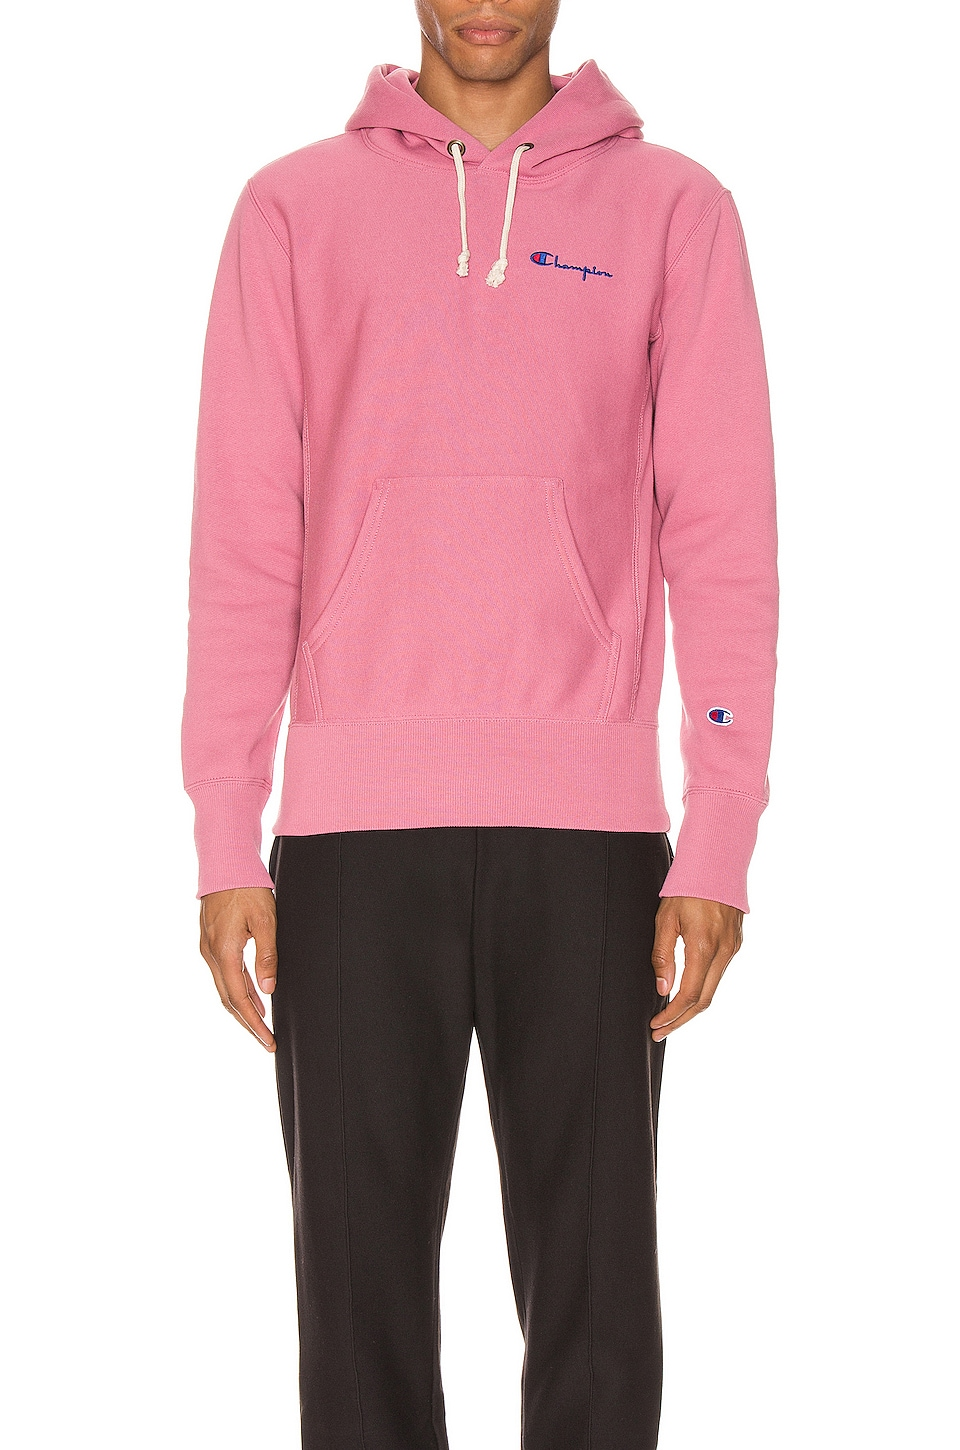 Champion Reverse Weave Small Script Hooded Sweatshirt in Heather Rose